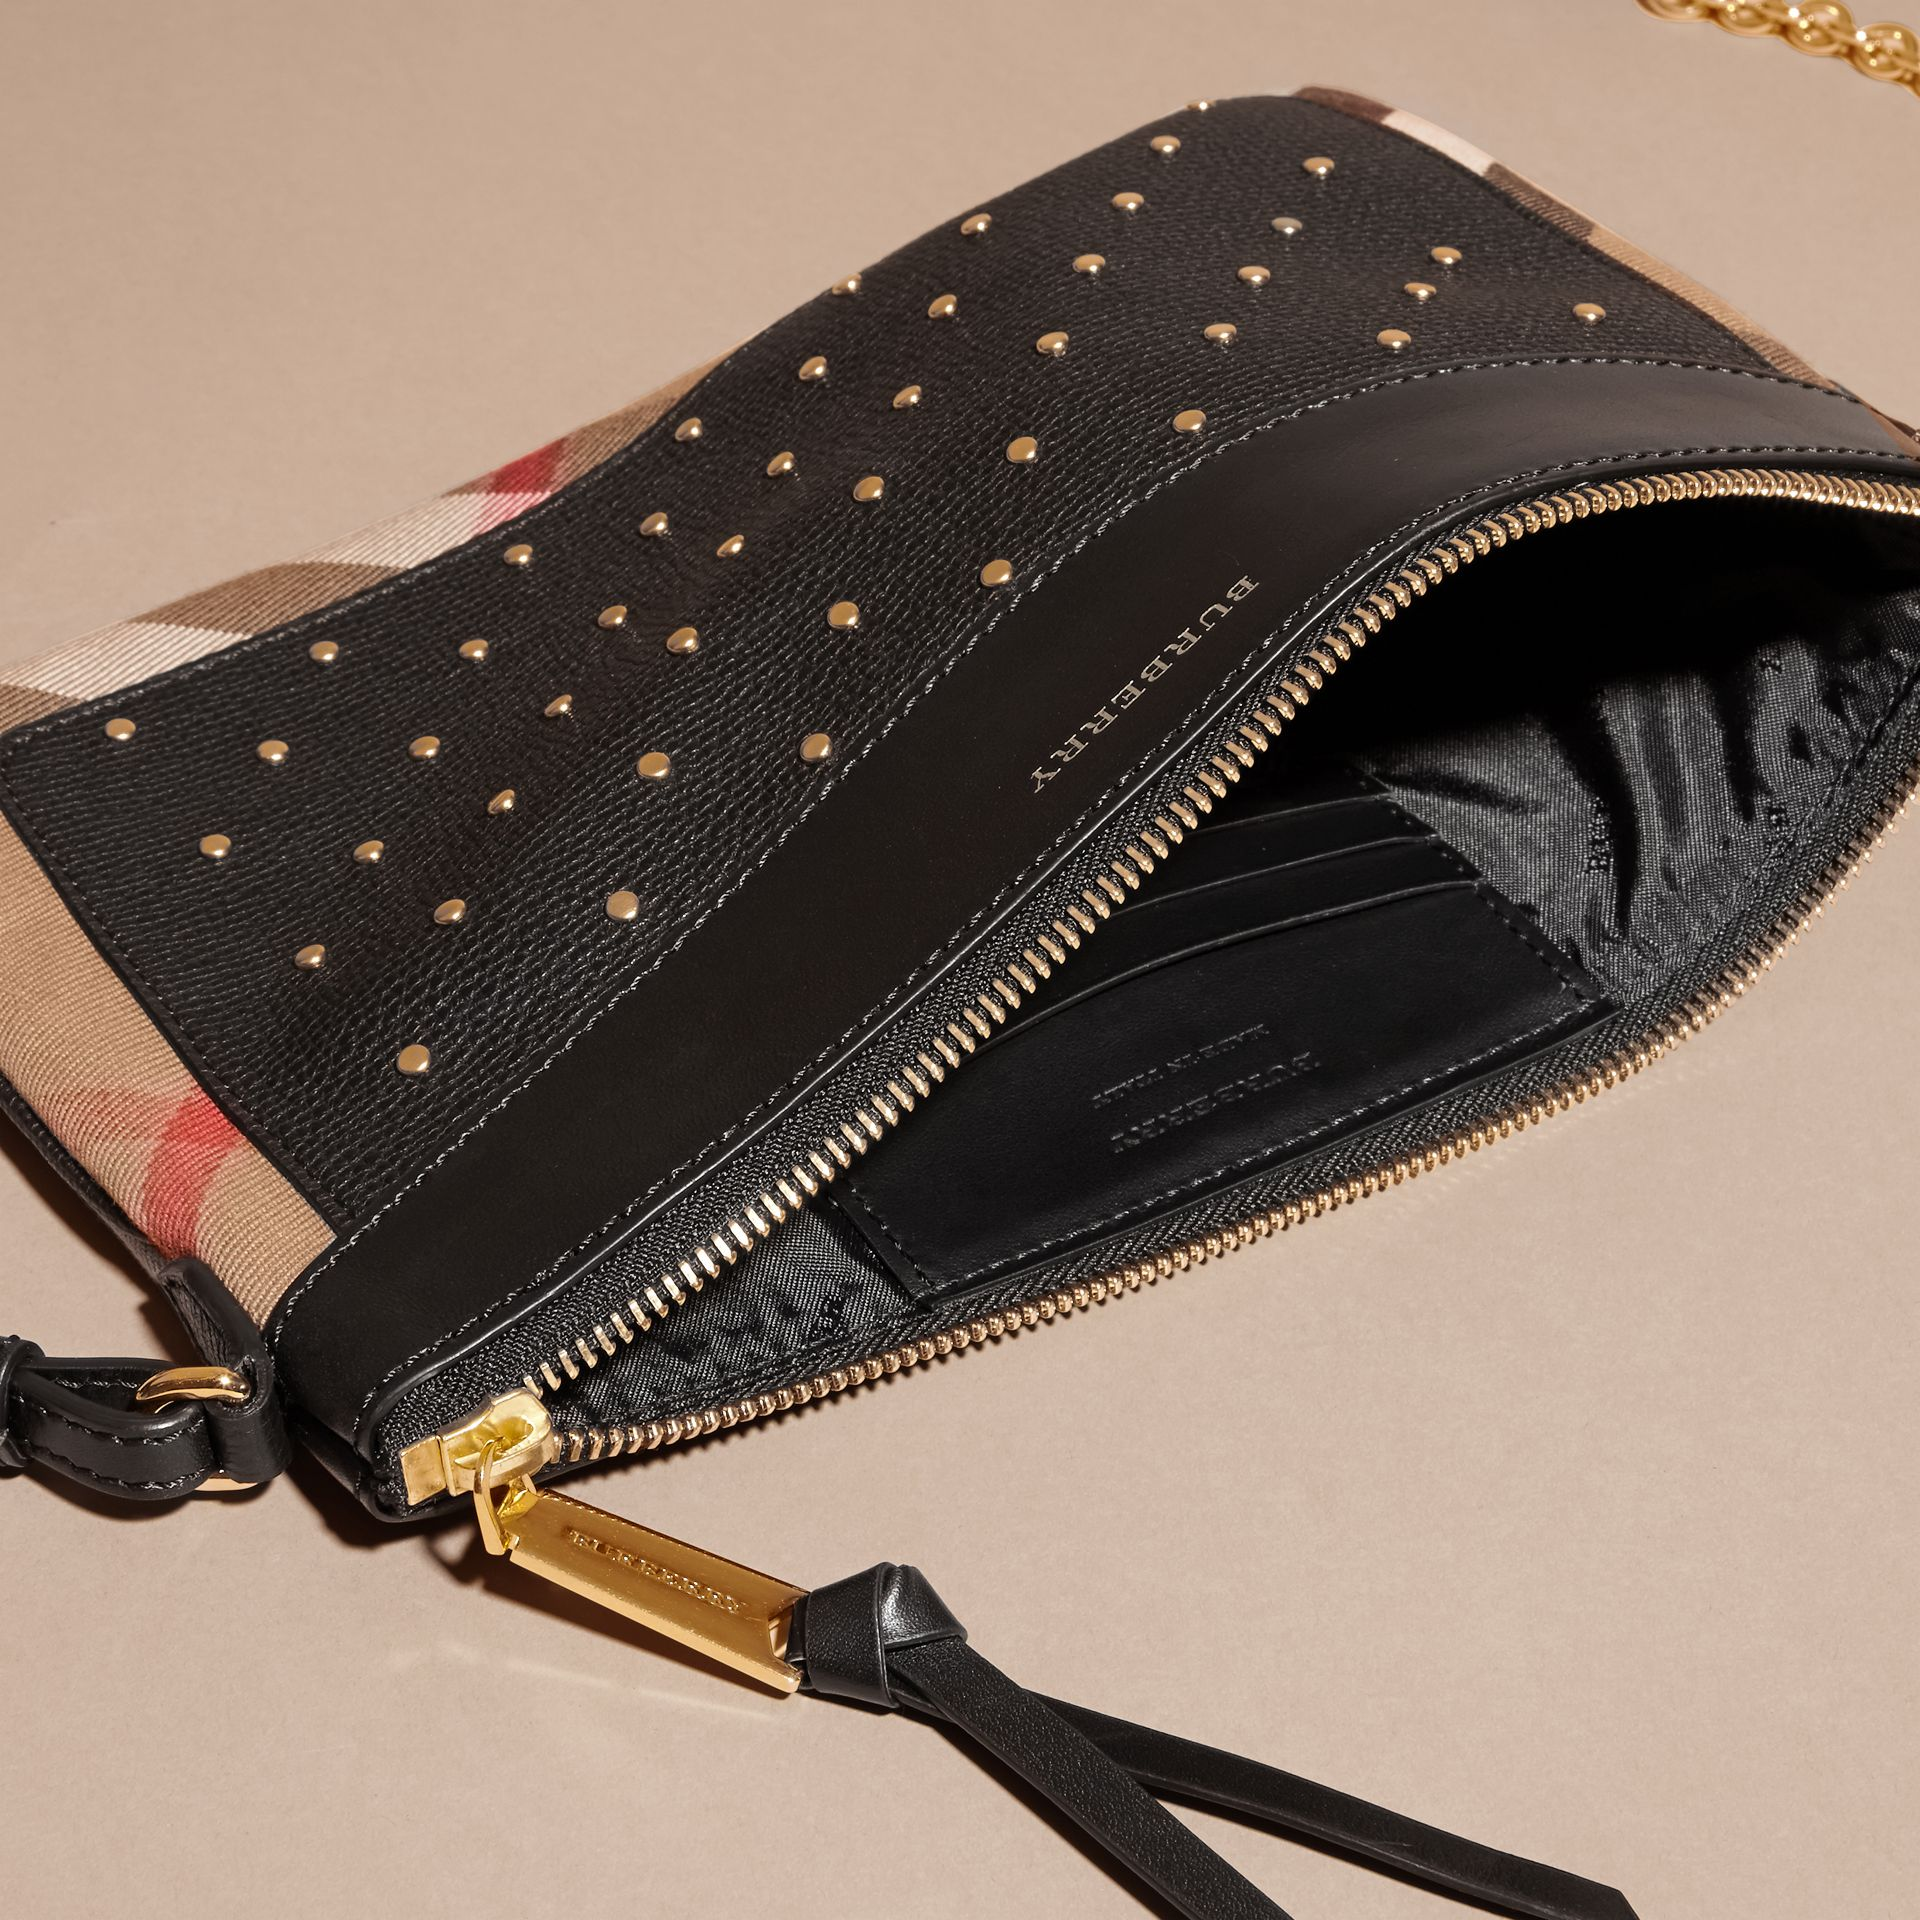 Black Riveted Leather and House Check Clutch Bag Black - gallery image 6